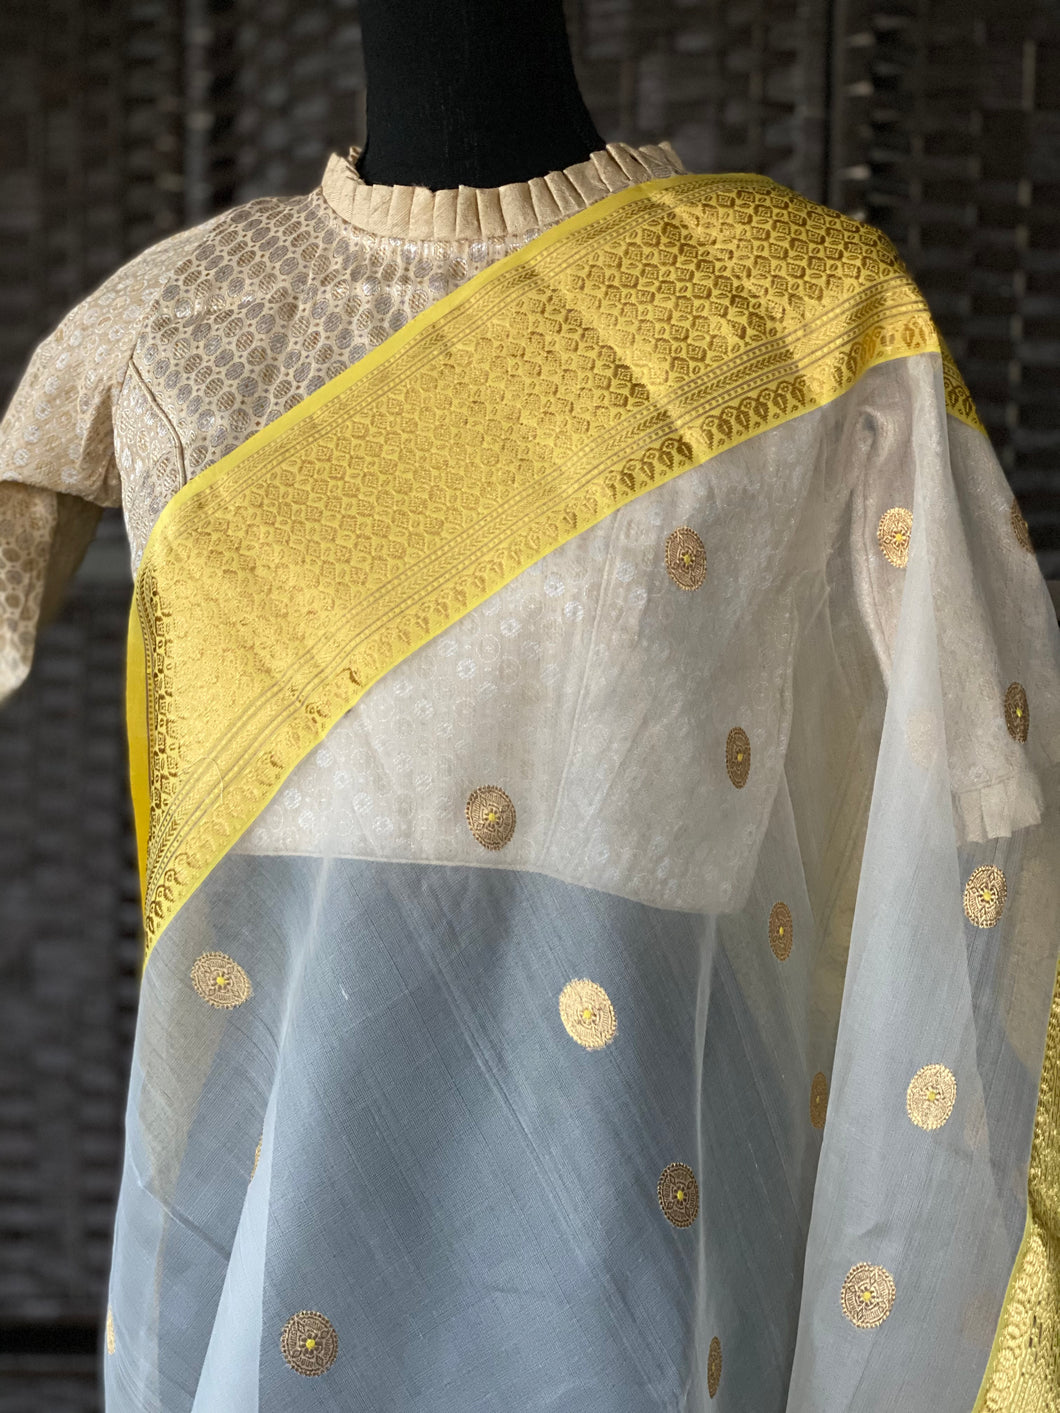 Designer Blouse - Offwhite Golden Brocade